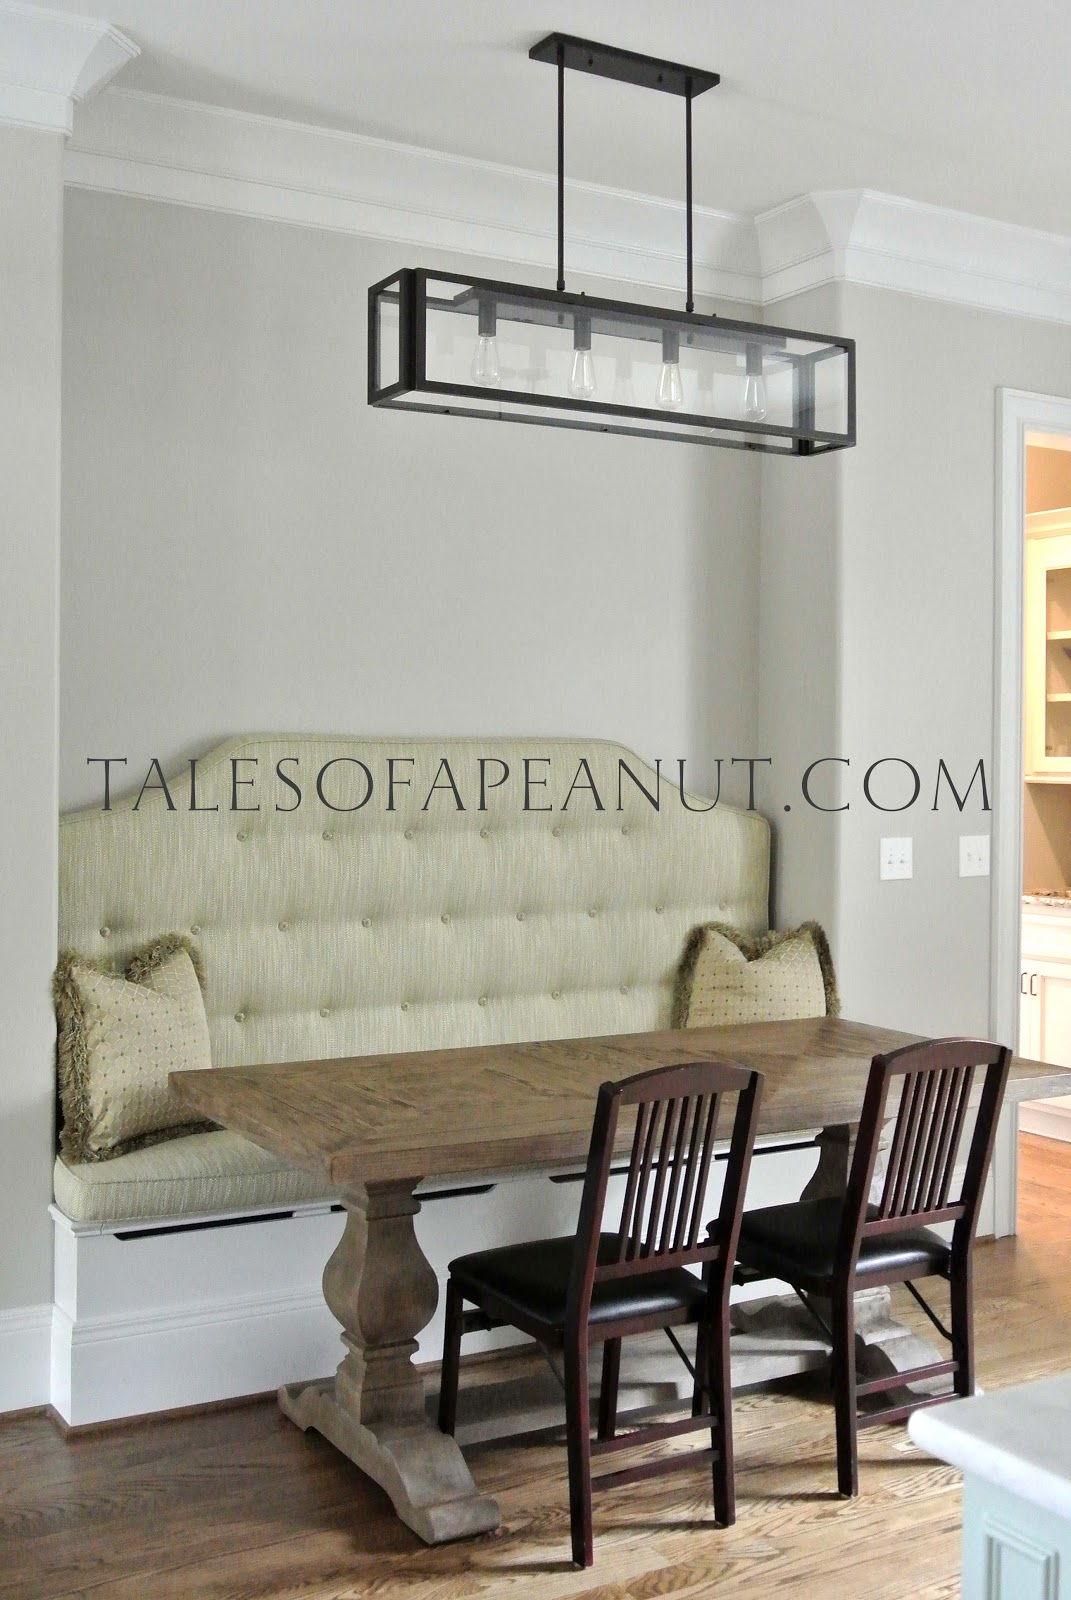 Building a home kitchen banquette jenn elwell - Where to buy kitchen banquette ...